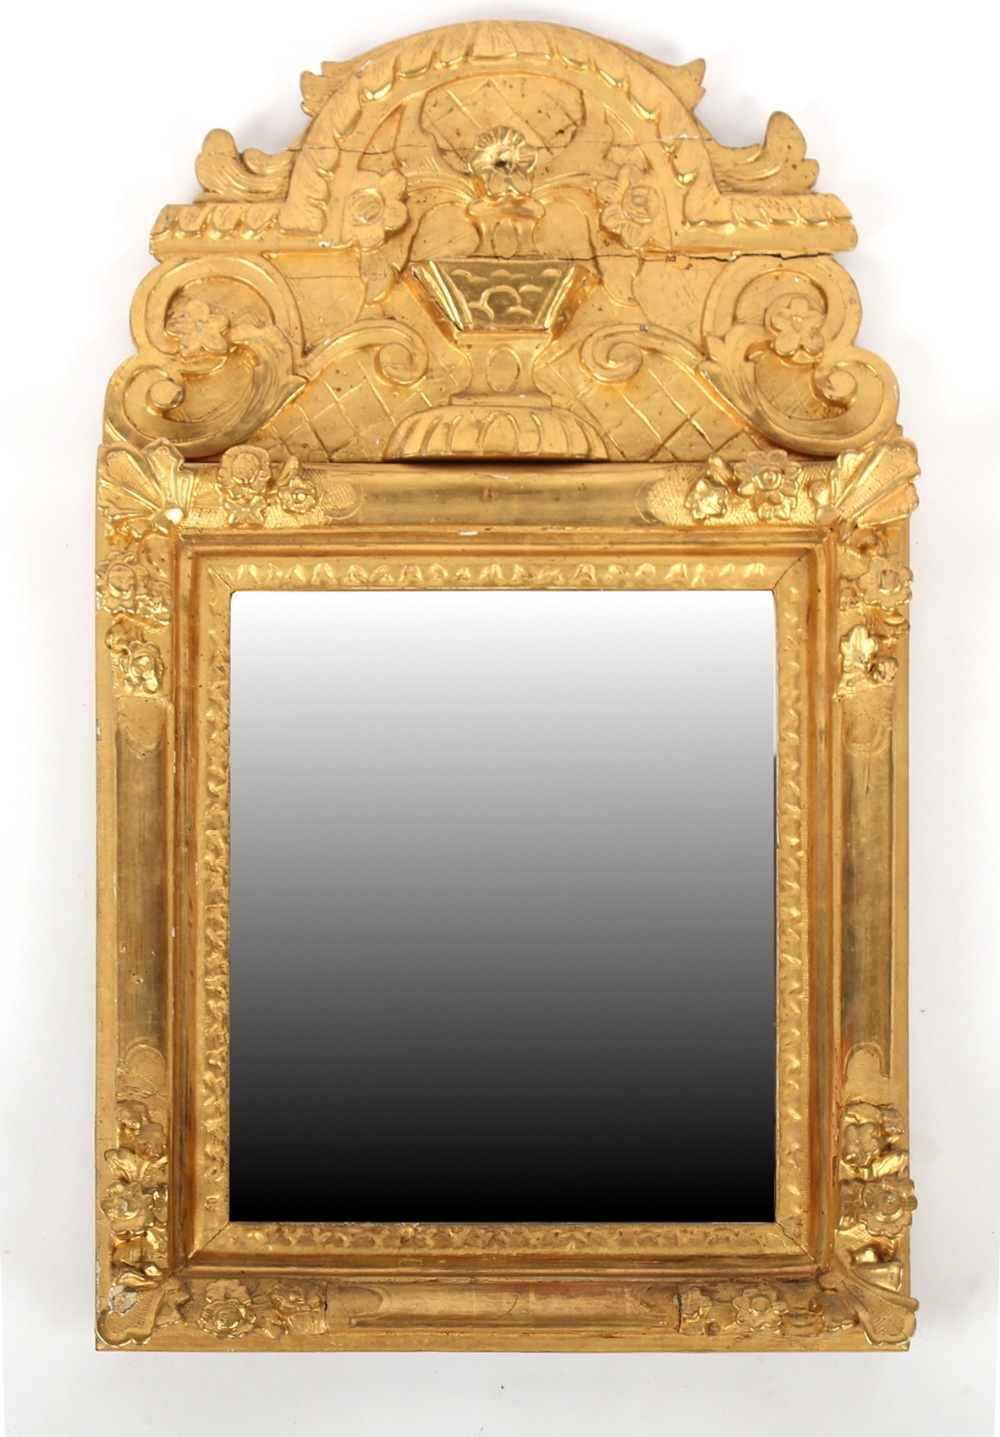 Property of a lady of title - a 19th century Continental giltwood framed wall mirror with later